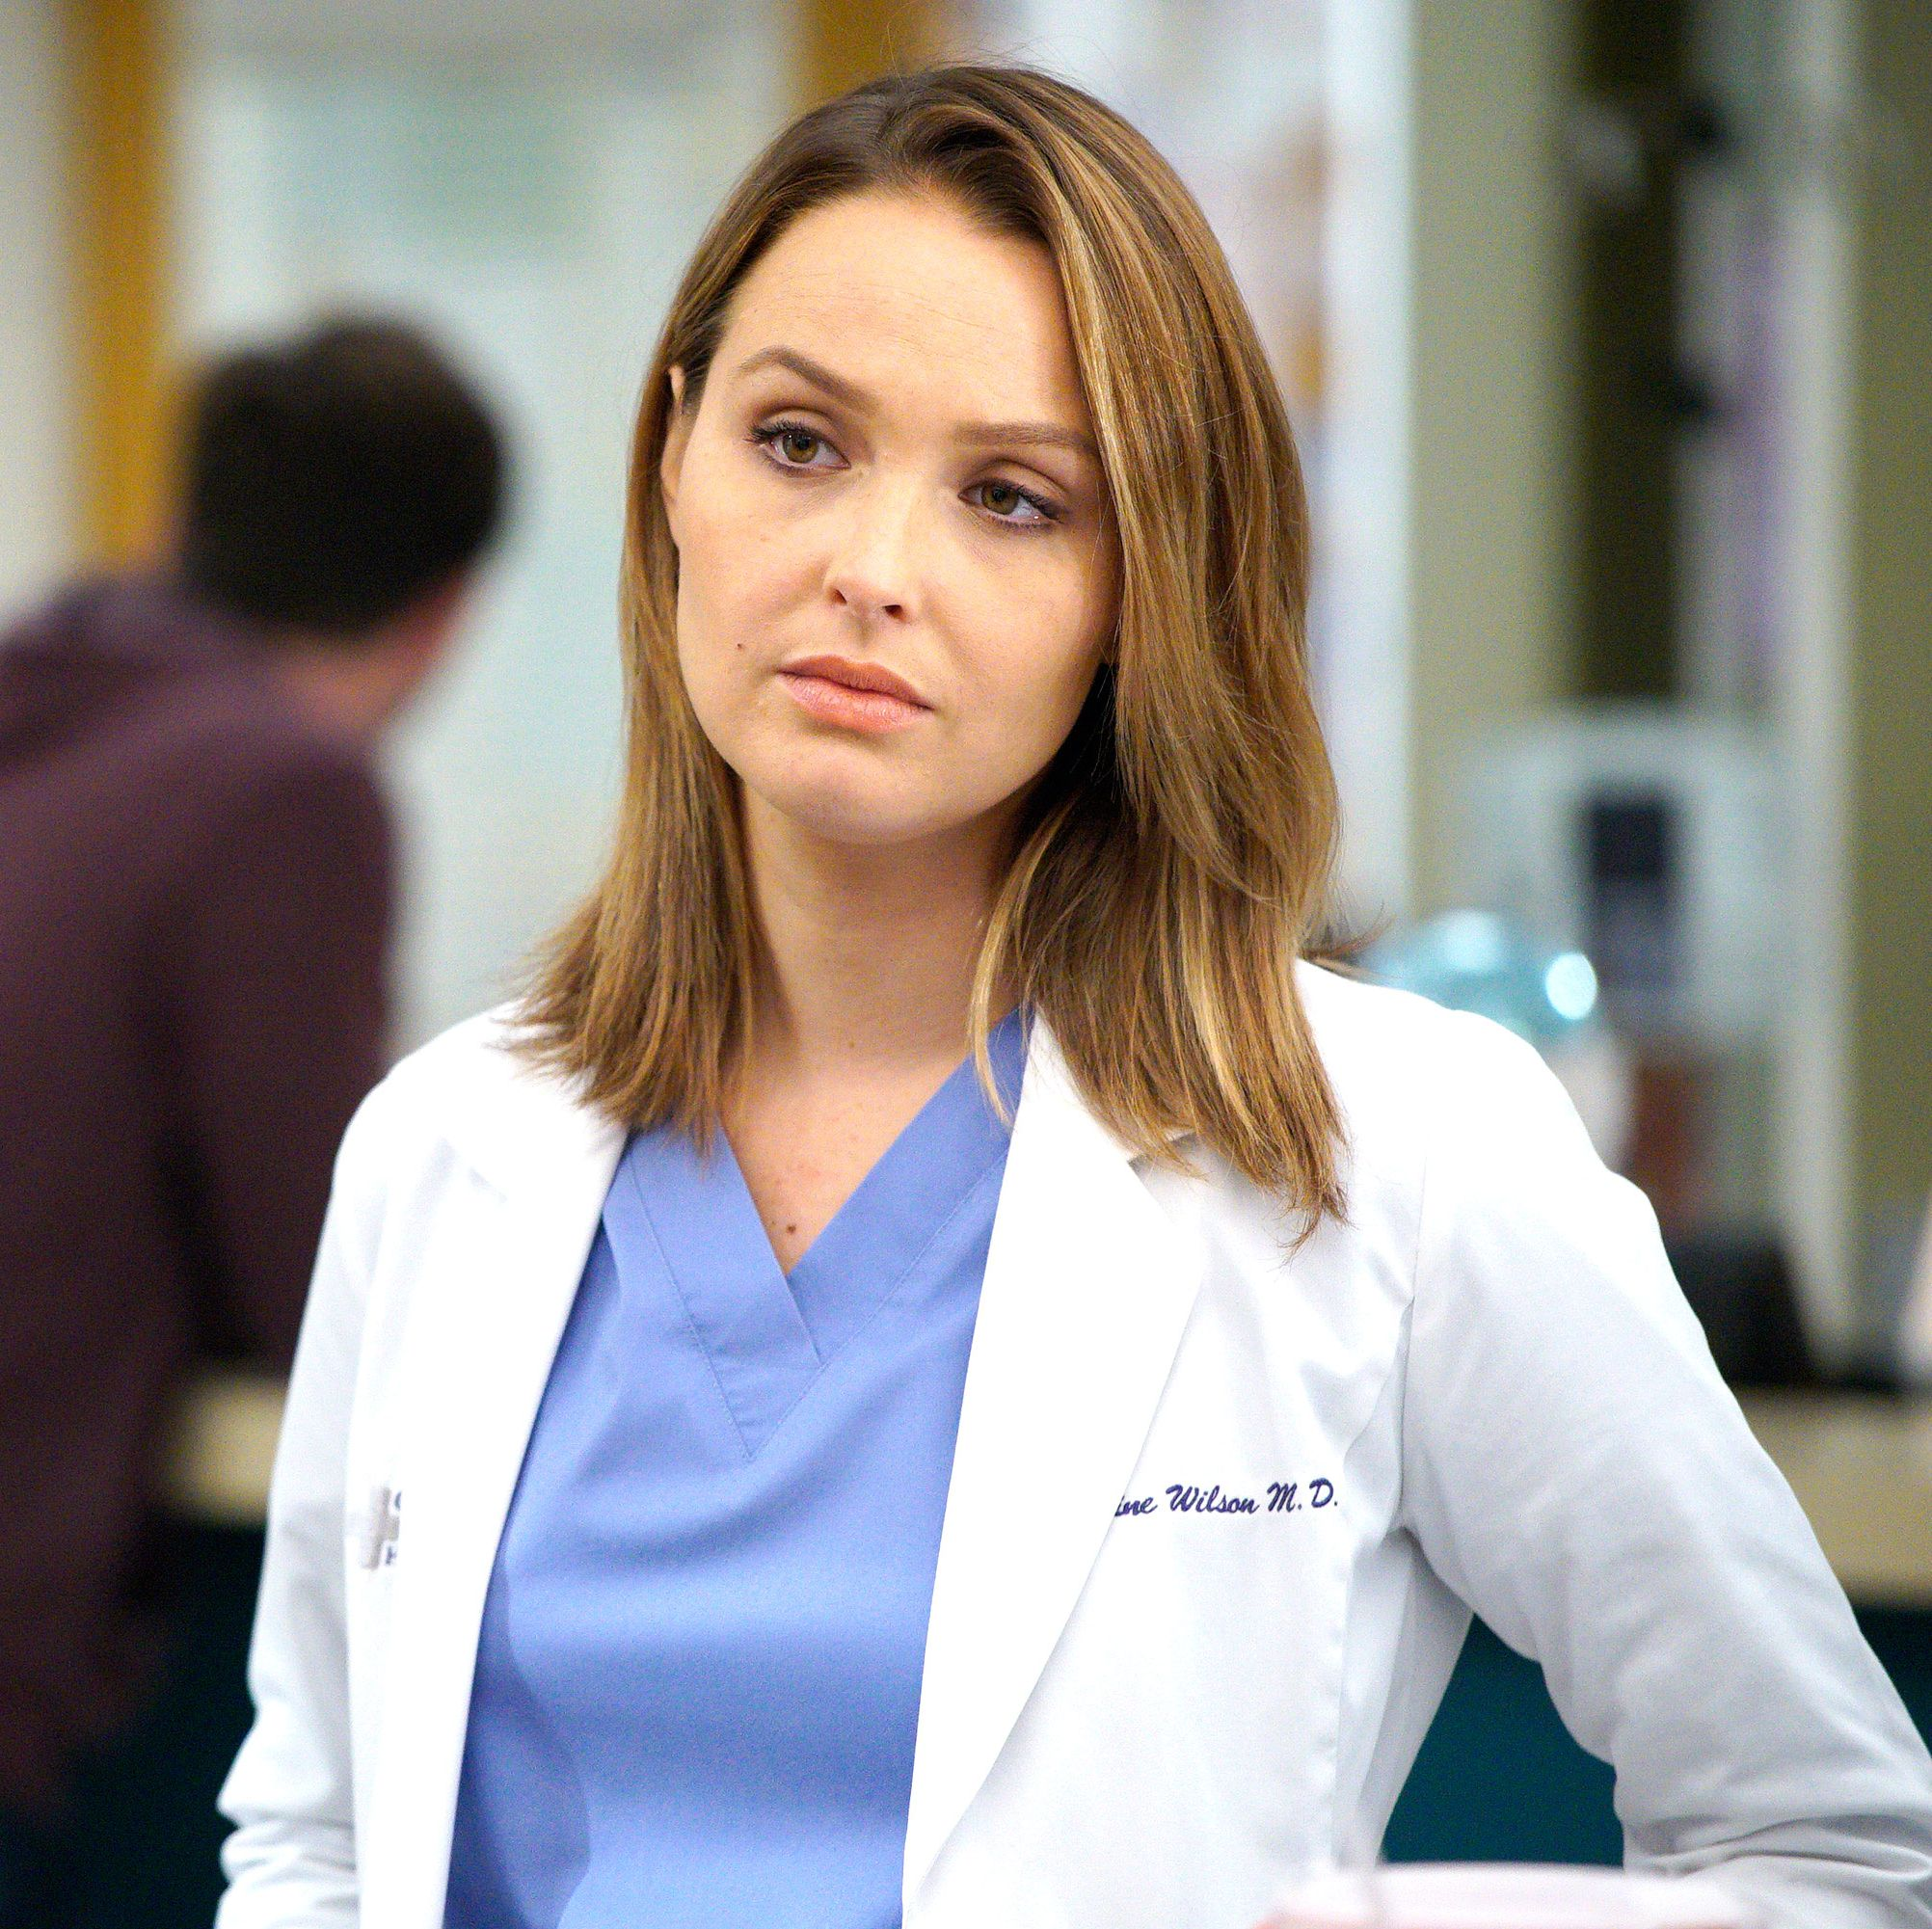 Grey's Anatomy may have just revealed who is playing Jo's mother